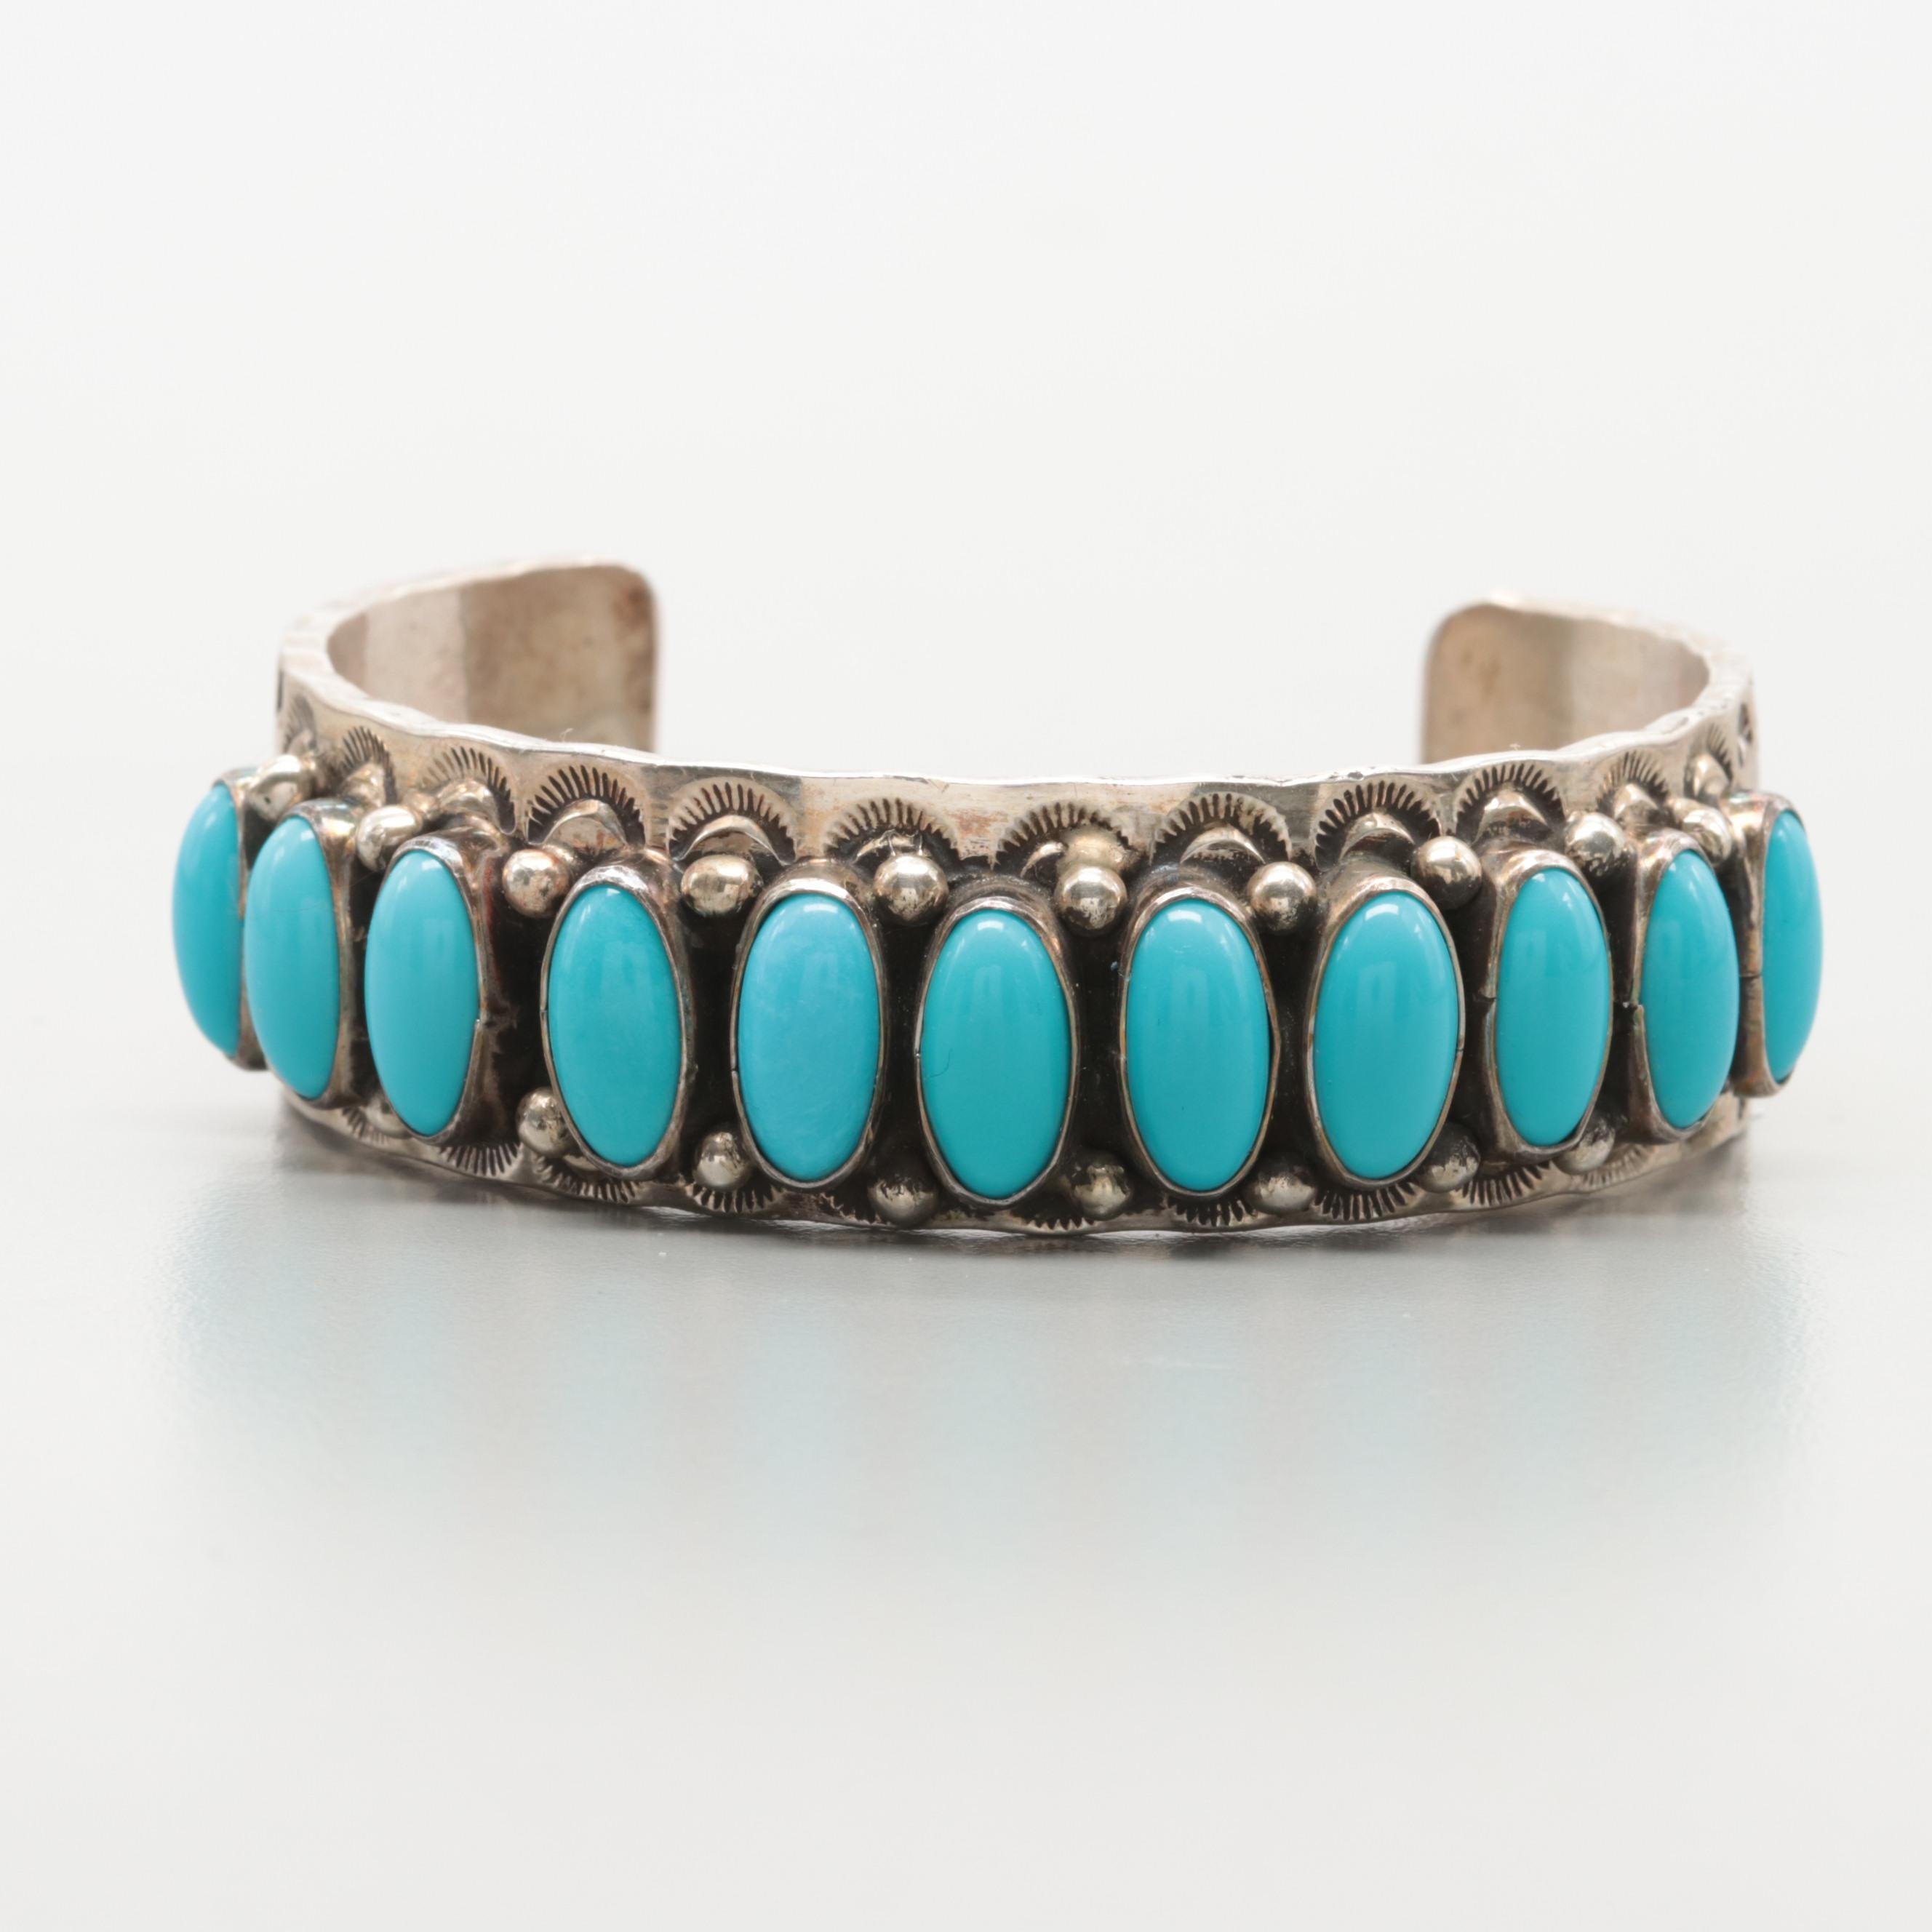 Nelson Burbank Navajo Diné Sterling Silver Turquoise Cuff Bracelet